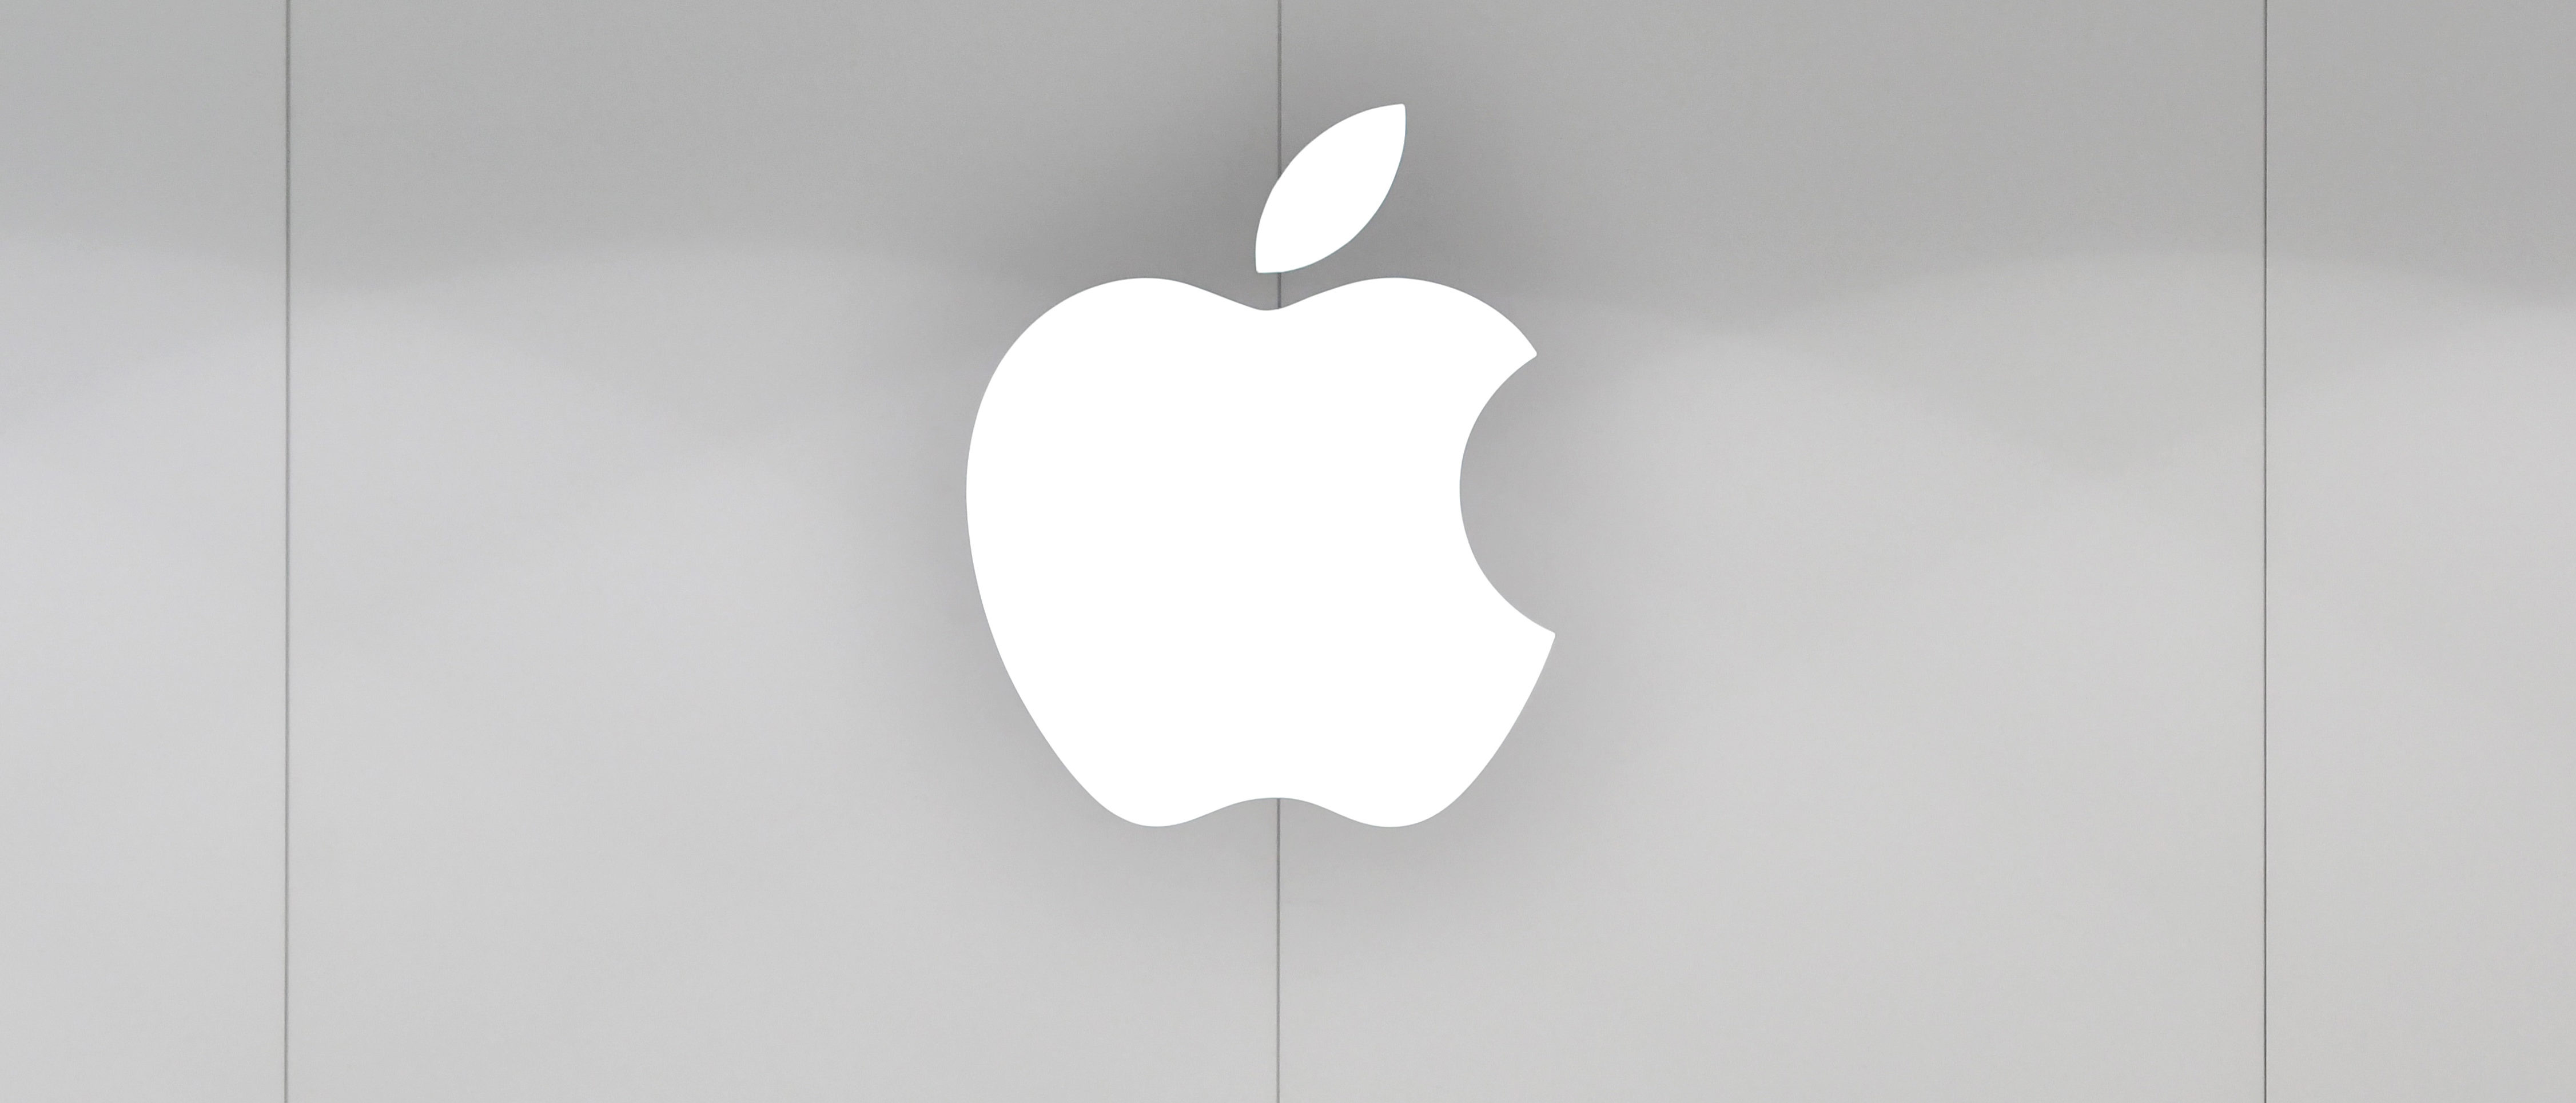 Top Apple Exec Steve Dowling Announces Resignation, Making Him The 3rd To Do So In 2019